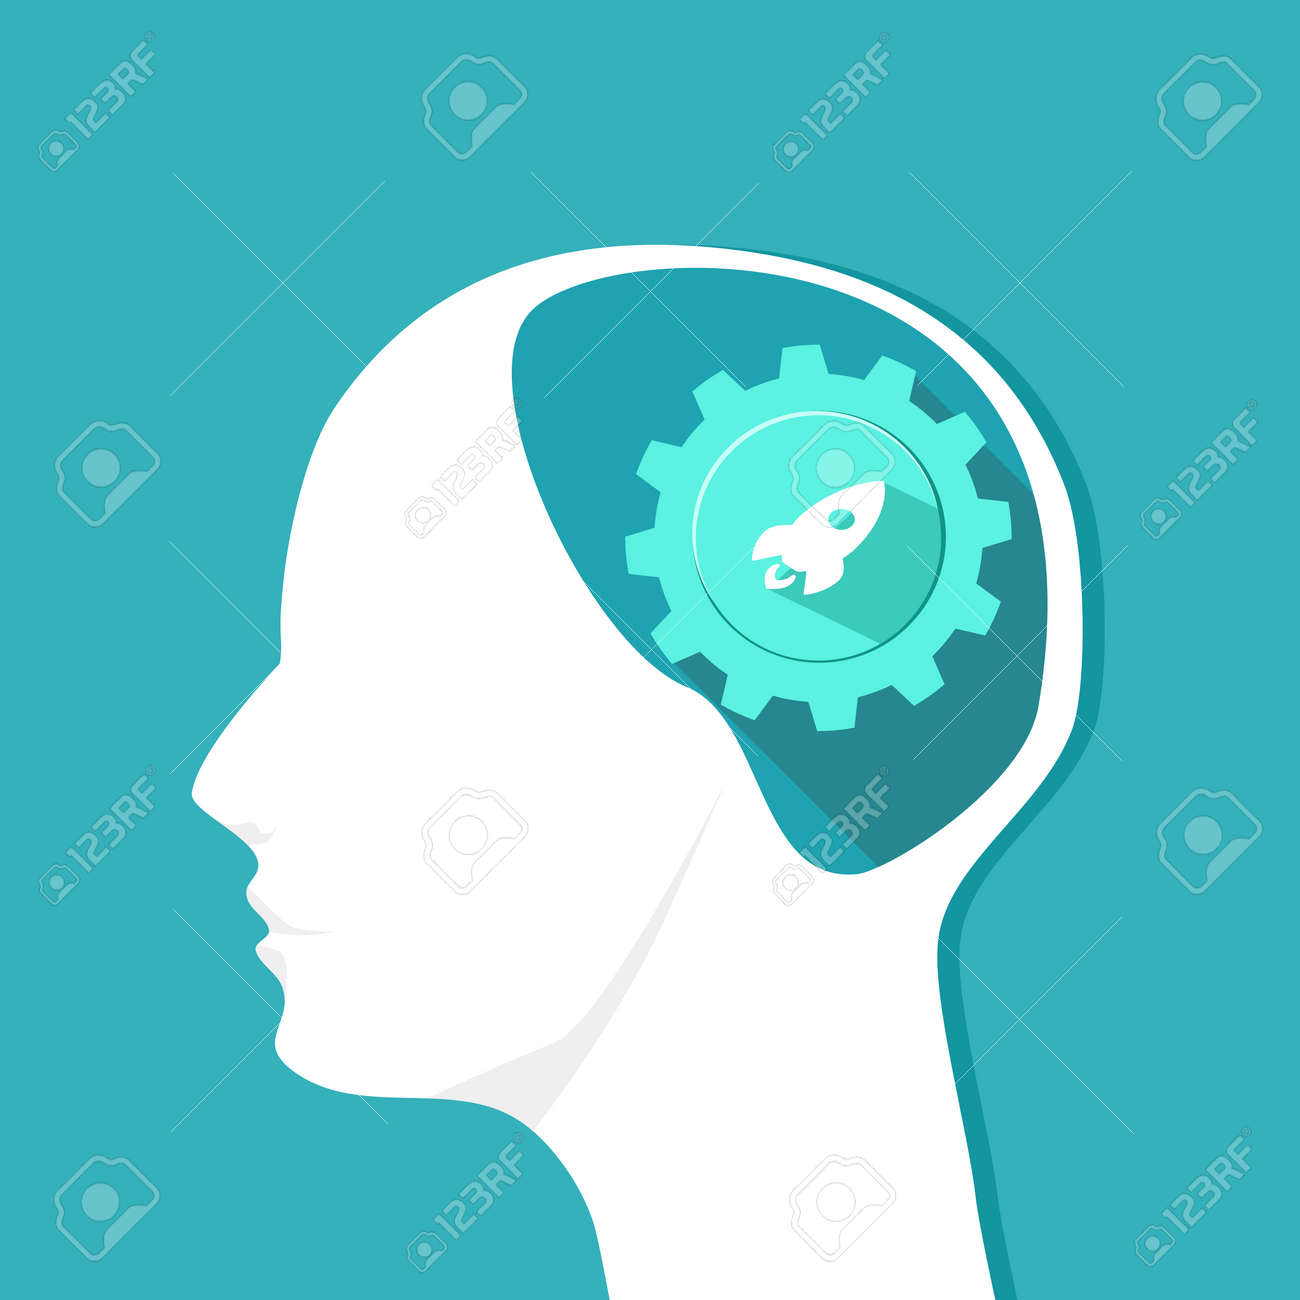 Rocket icon in the human head. Originality in the brain. Vector eps - 158089191